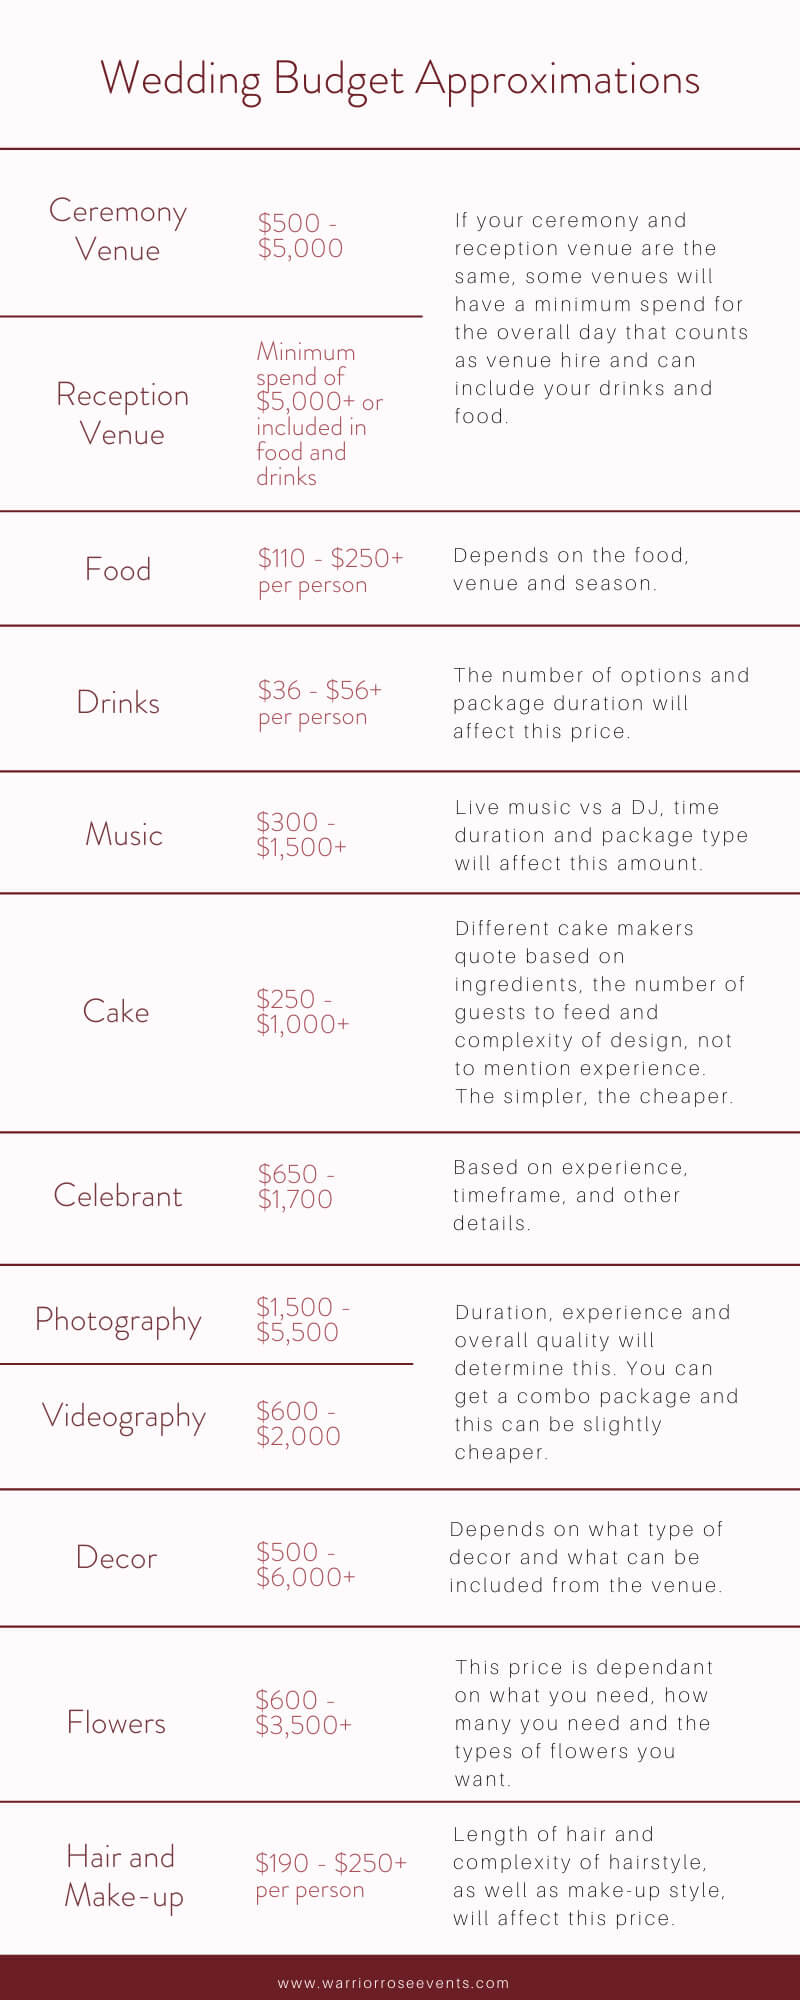 Wedding Budget Checklists How to Build Your Wedding Budget Breakdown Warrior Rose Events 3